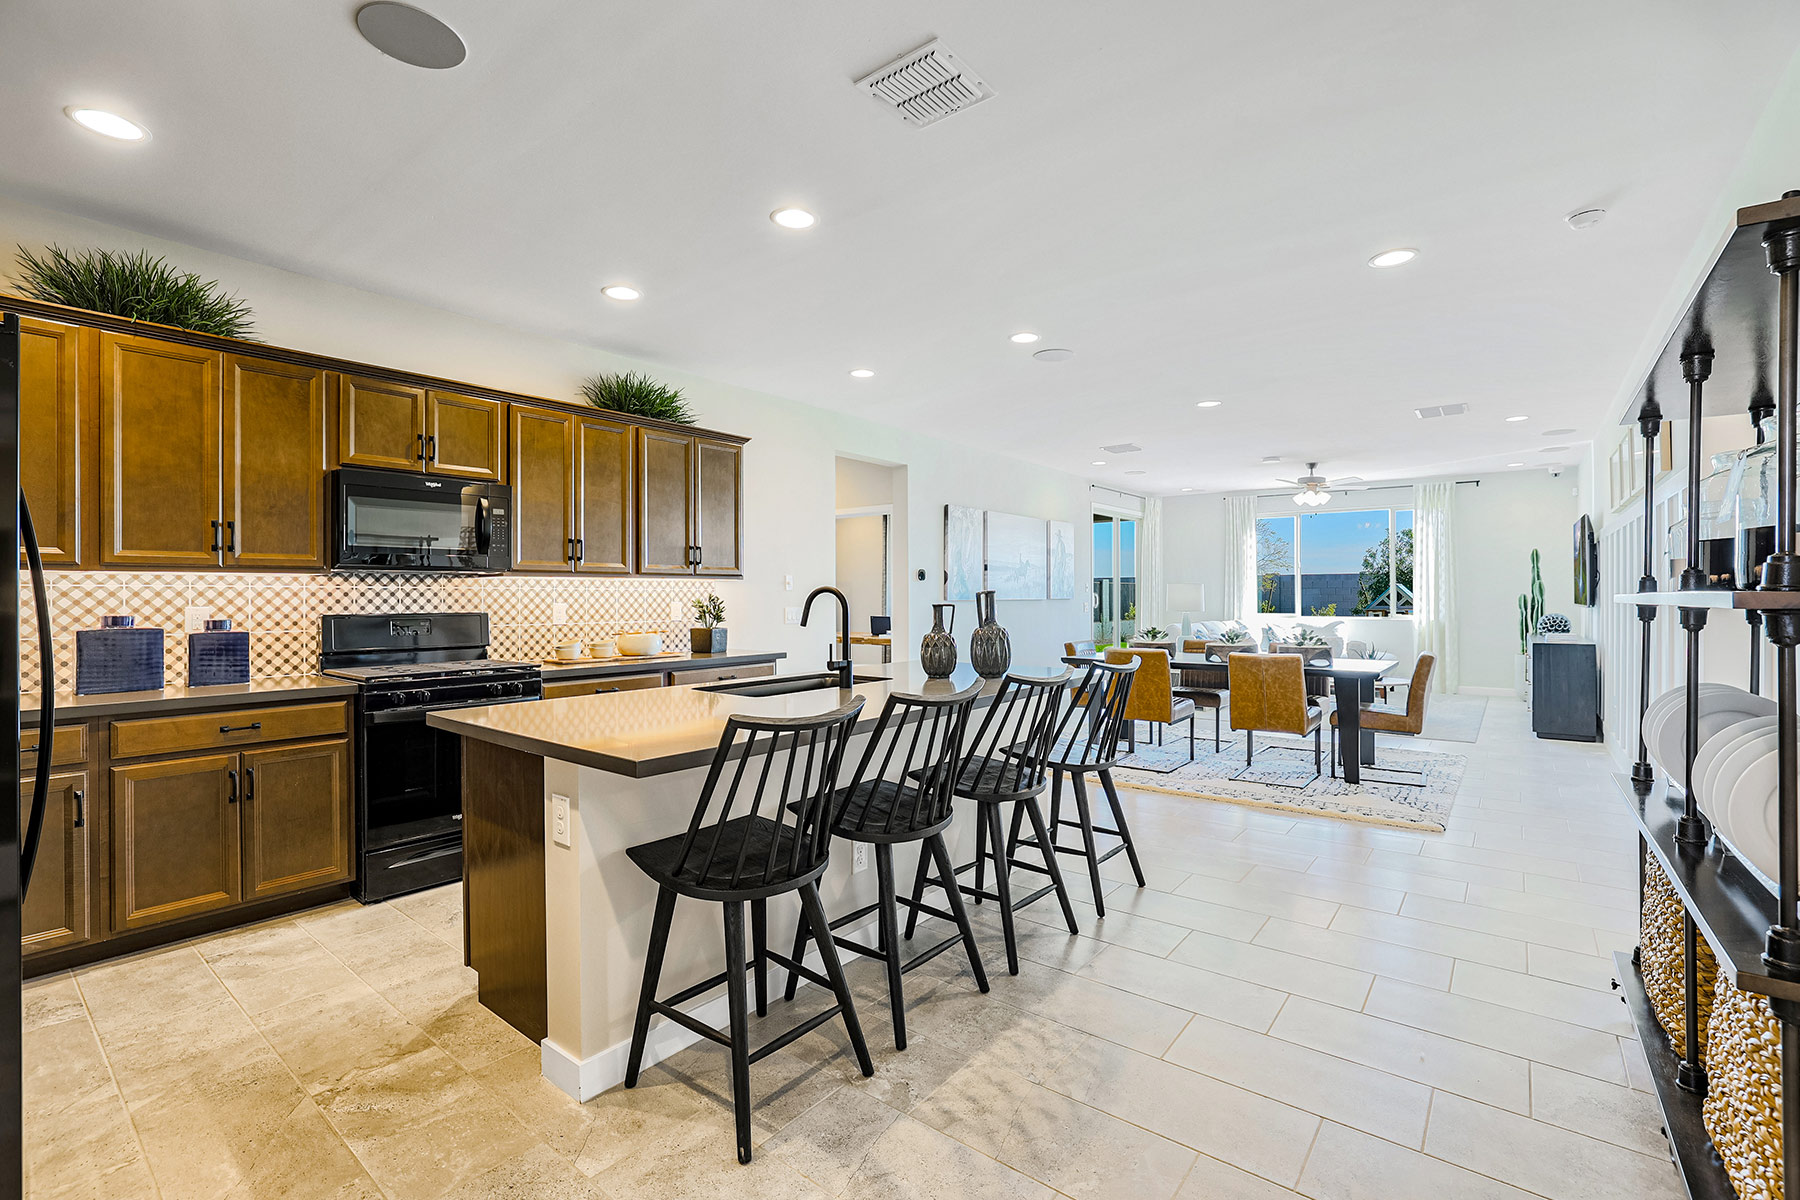 Aries Plan MATPHX_AZC_Aries_Kitchen_Dining_1800x1200 at Azure Canyon in Litchfield Park Arizona by Mattamy Homes